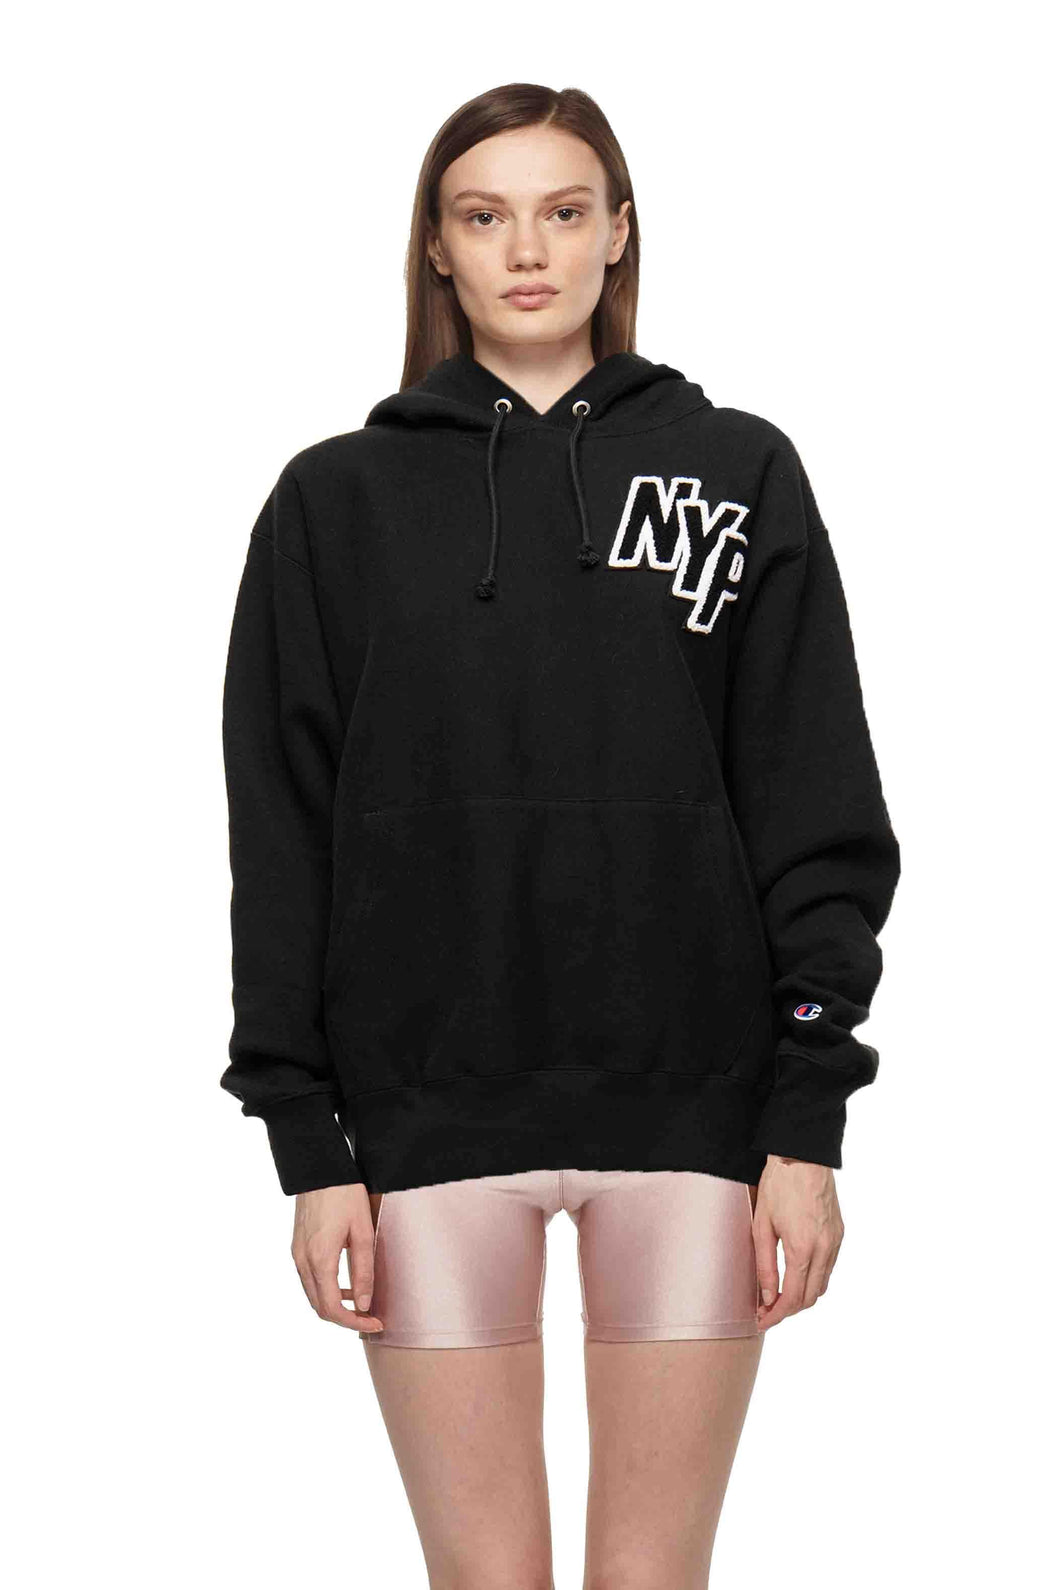 NYP Patch Sweatshirt